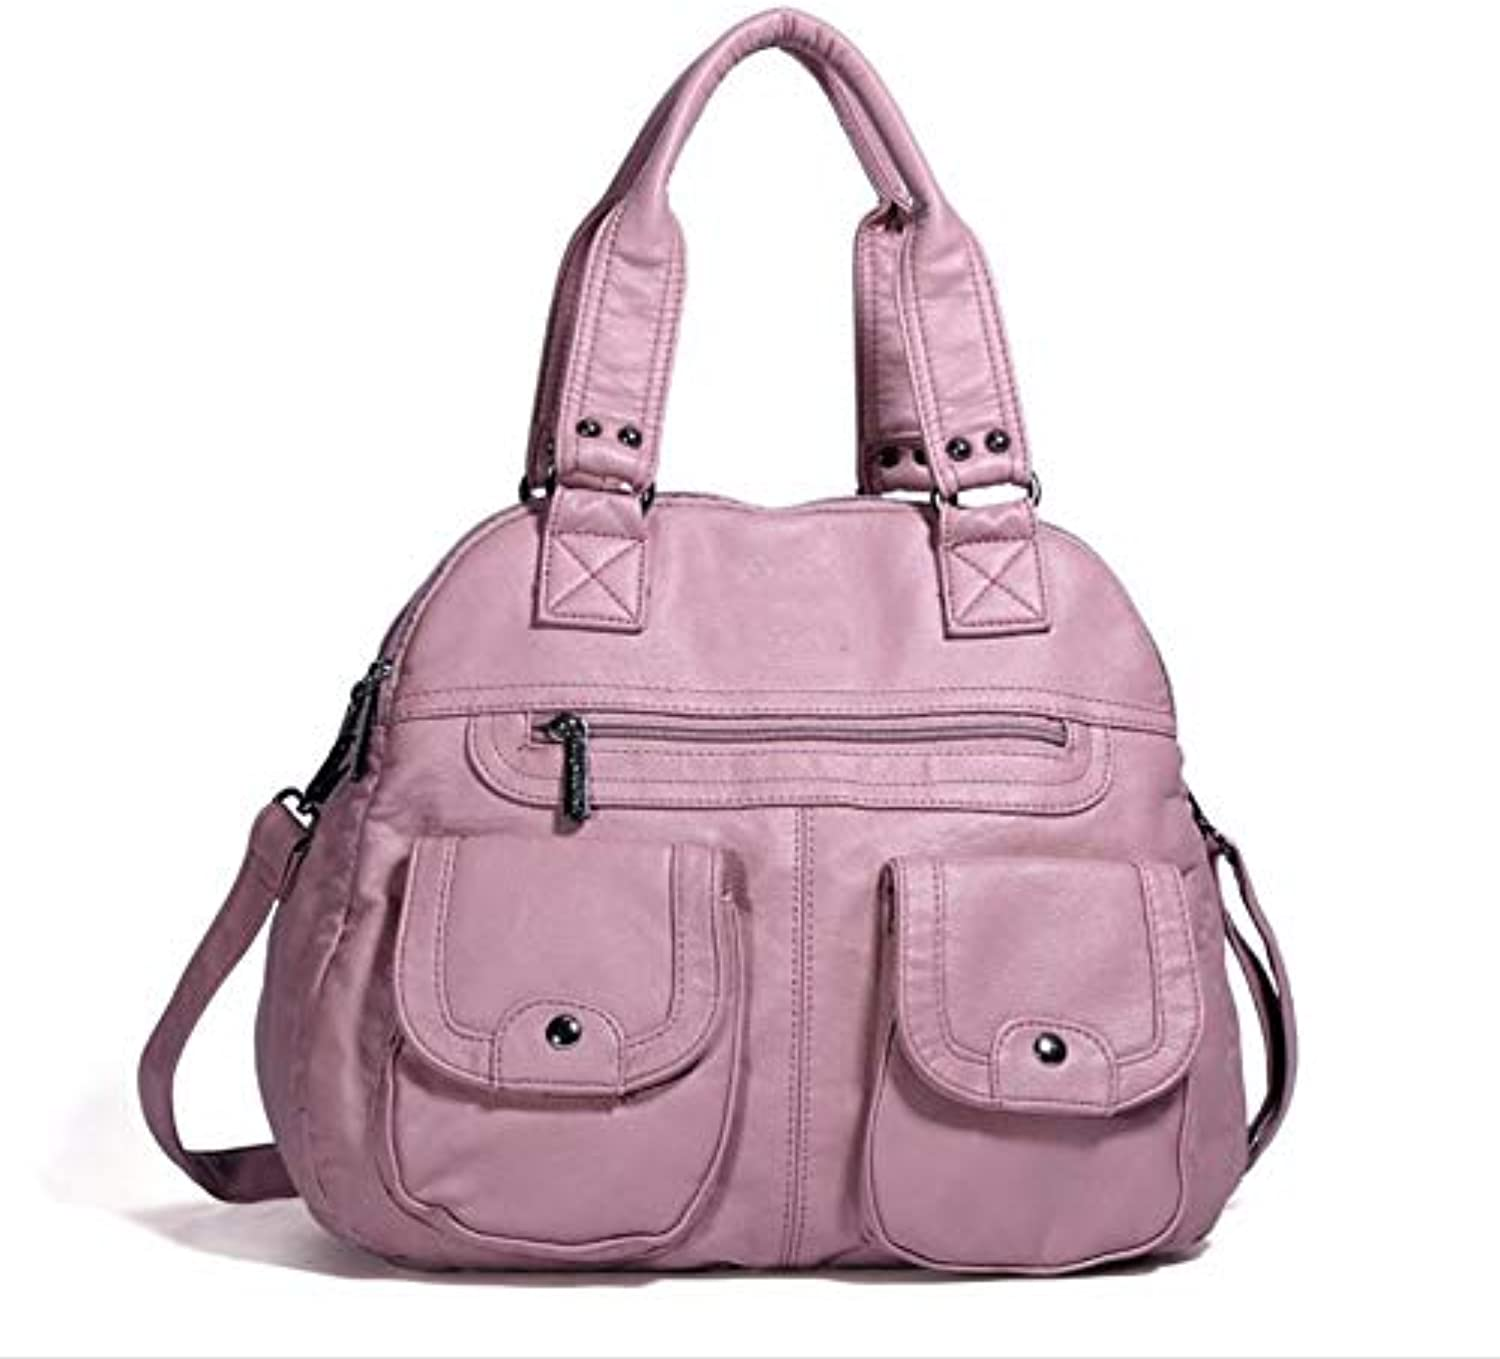 Autumn and Winter Women's Bag Large-Capacity Fashion Women's Single Shoulder Bag Pure-color Fashion Handbag Skew-Straddle Bag